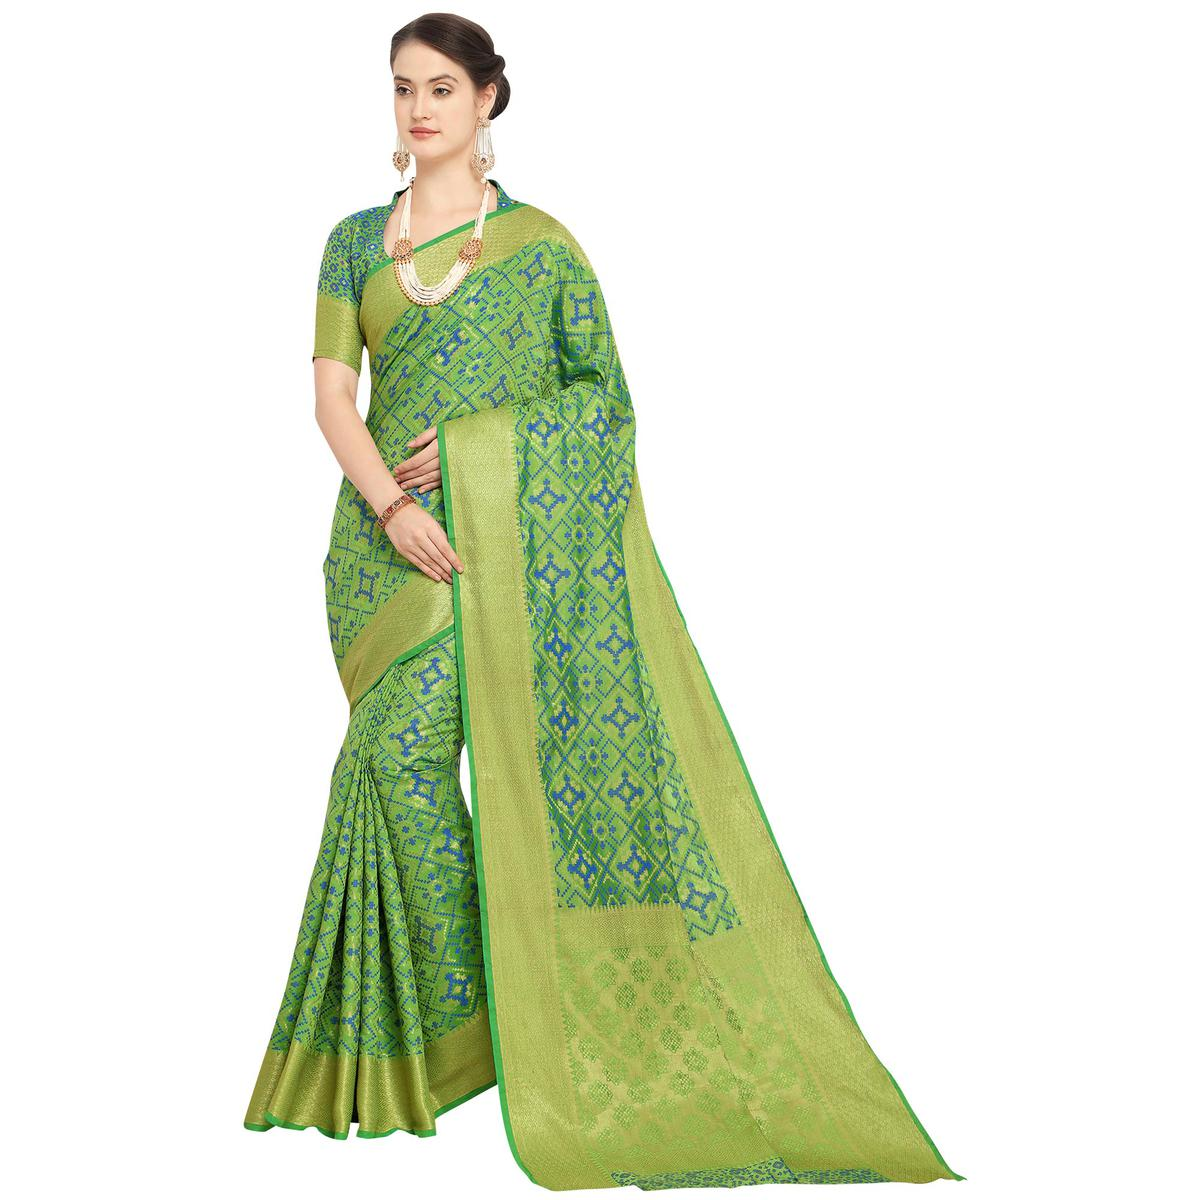 Exotic Green Colored Festive Wear Woven Wear Silk Saree